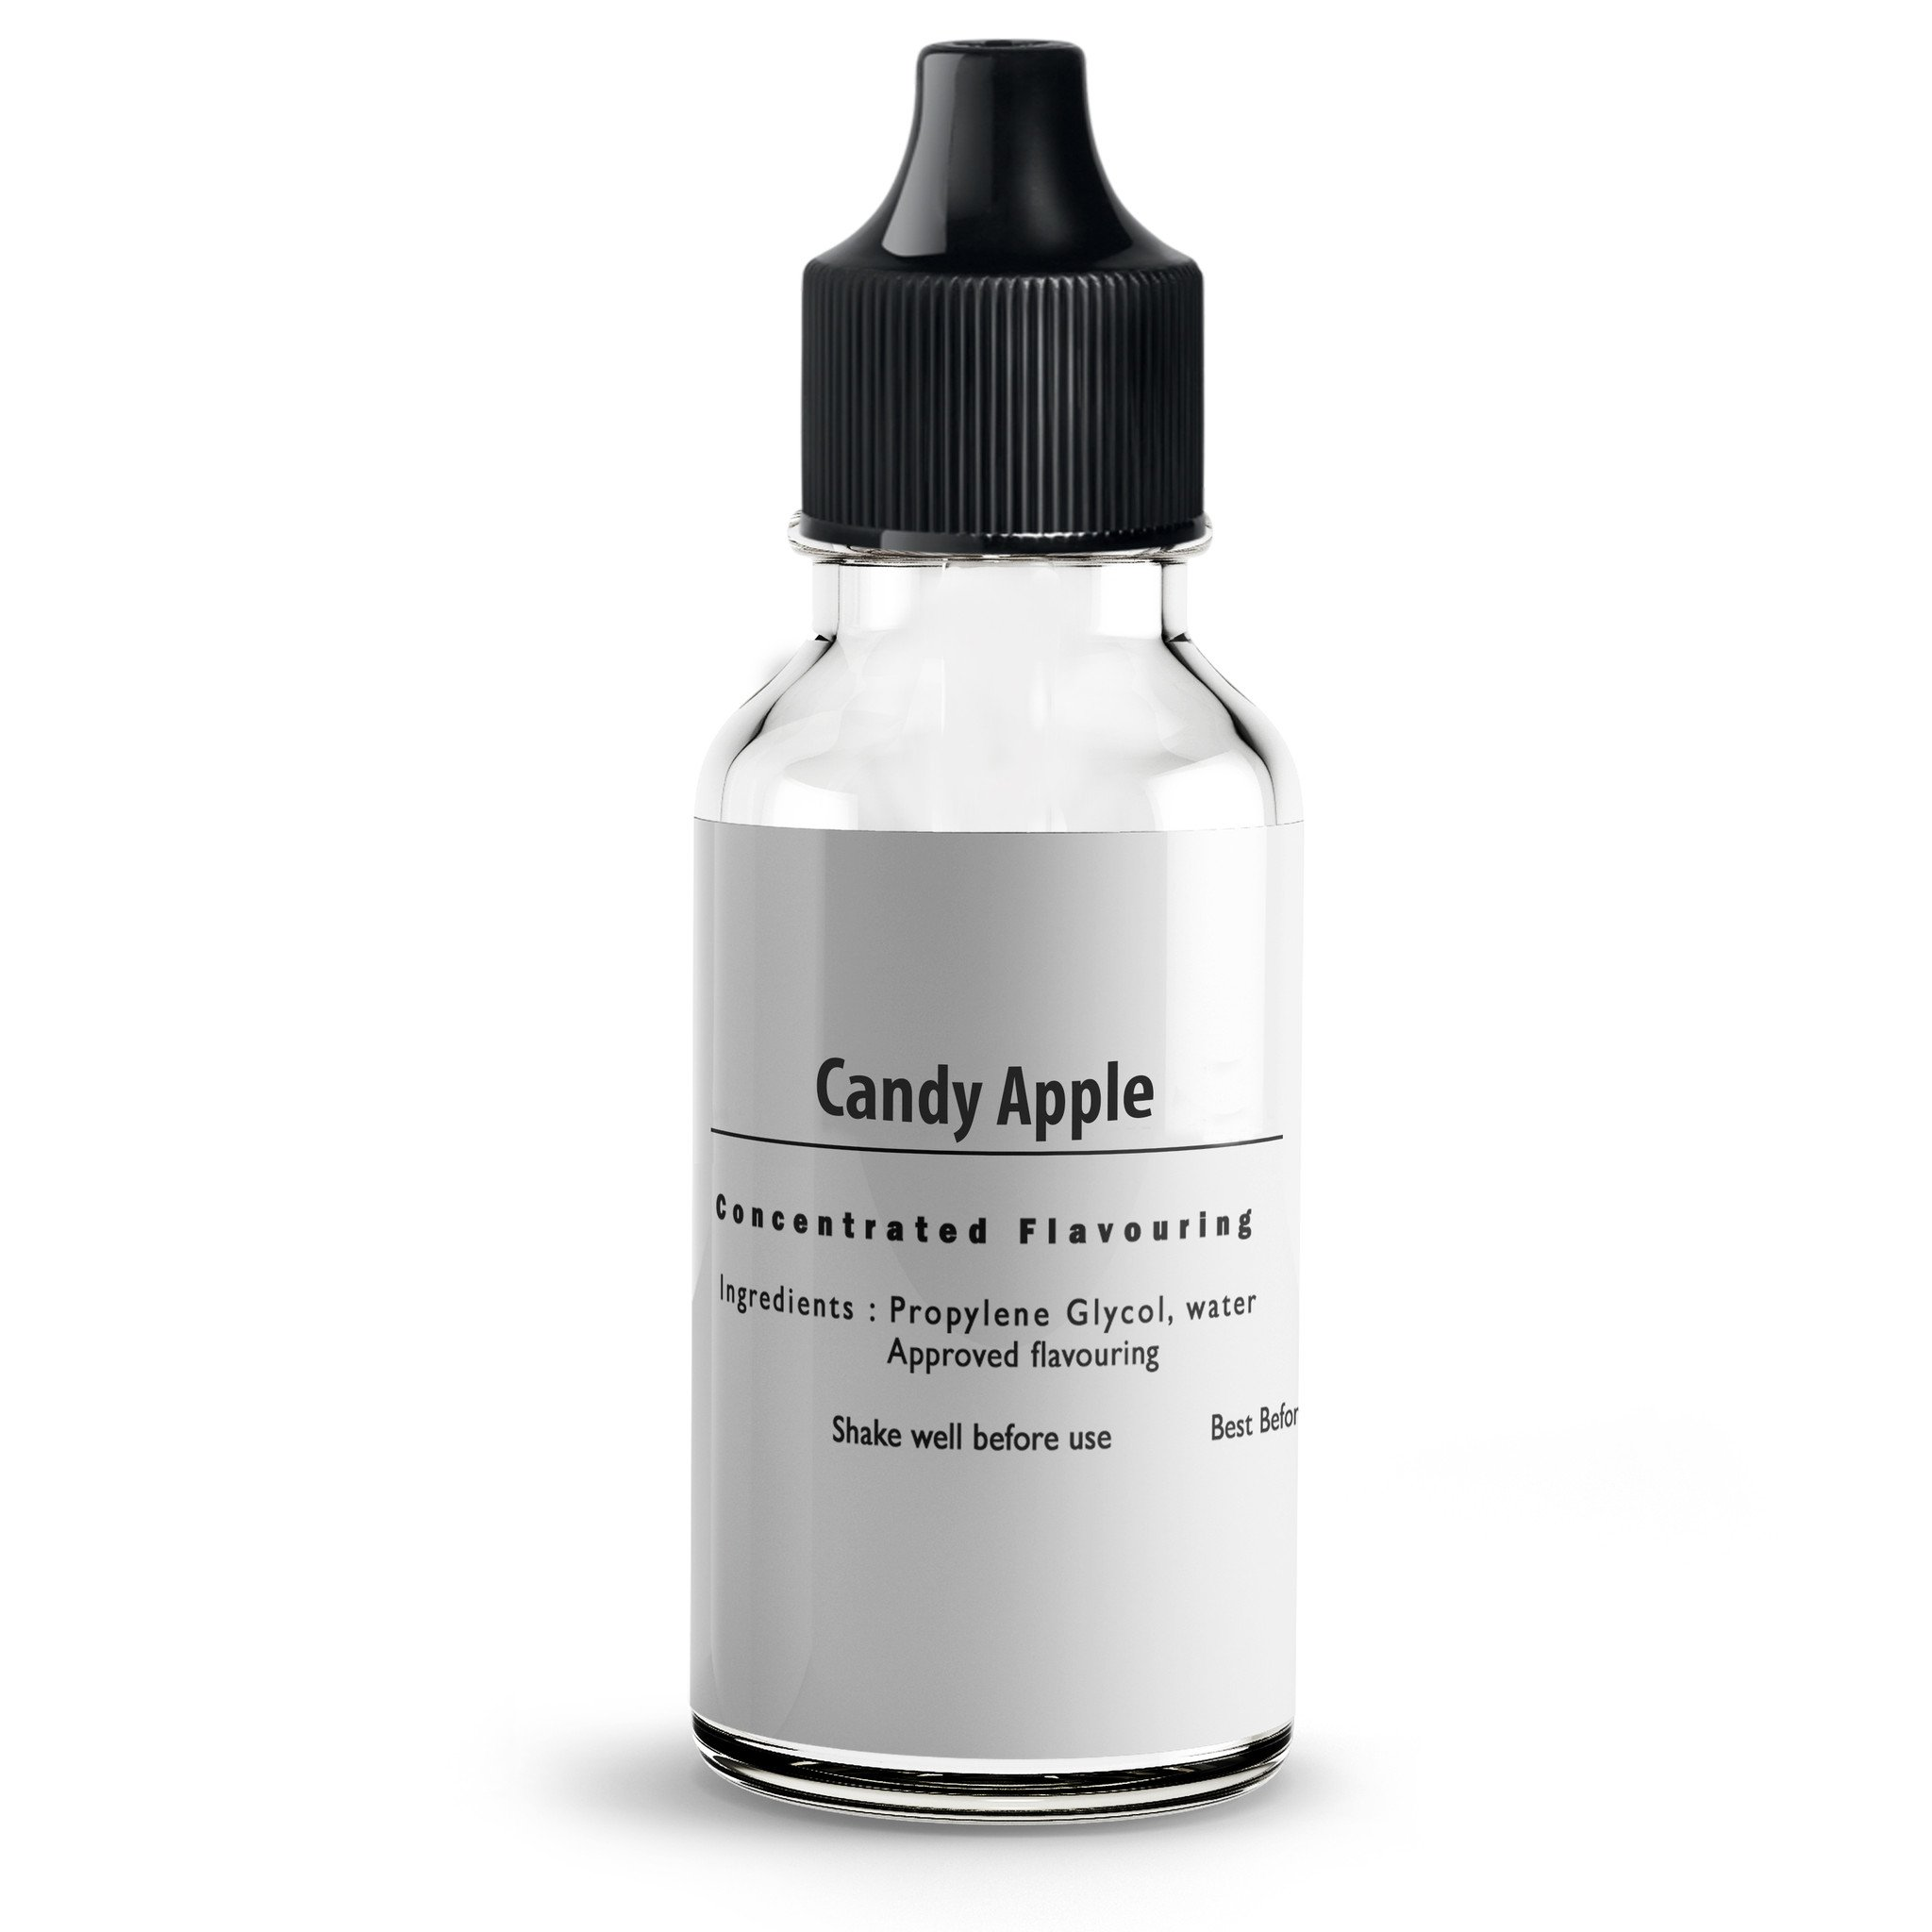 Apple Candy Flavour Concentrate For E Liquids